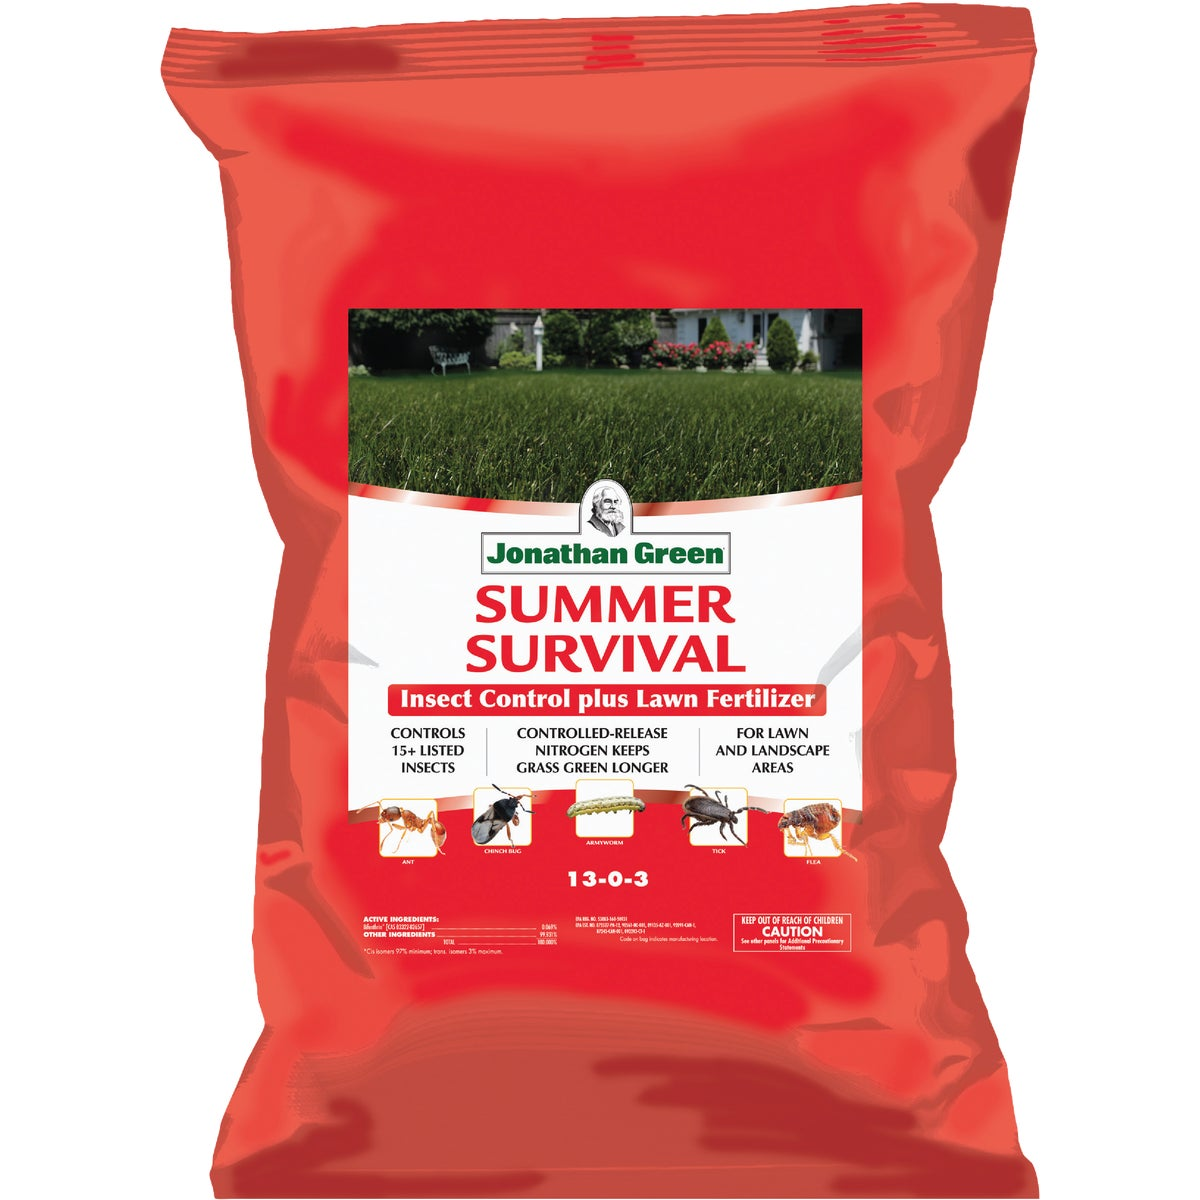 15M SUMR SURV FERTILIZER - 12015 by Jonathan Green